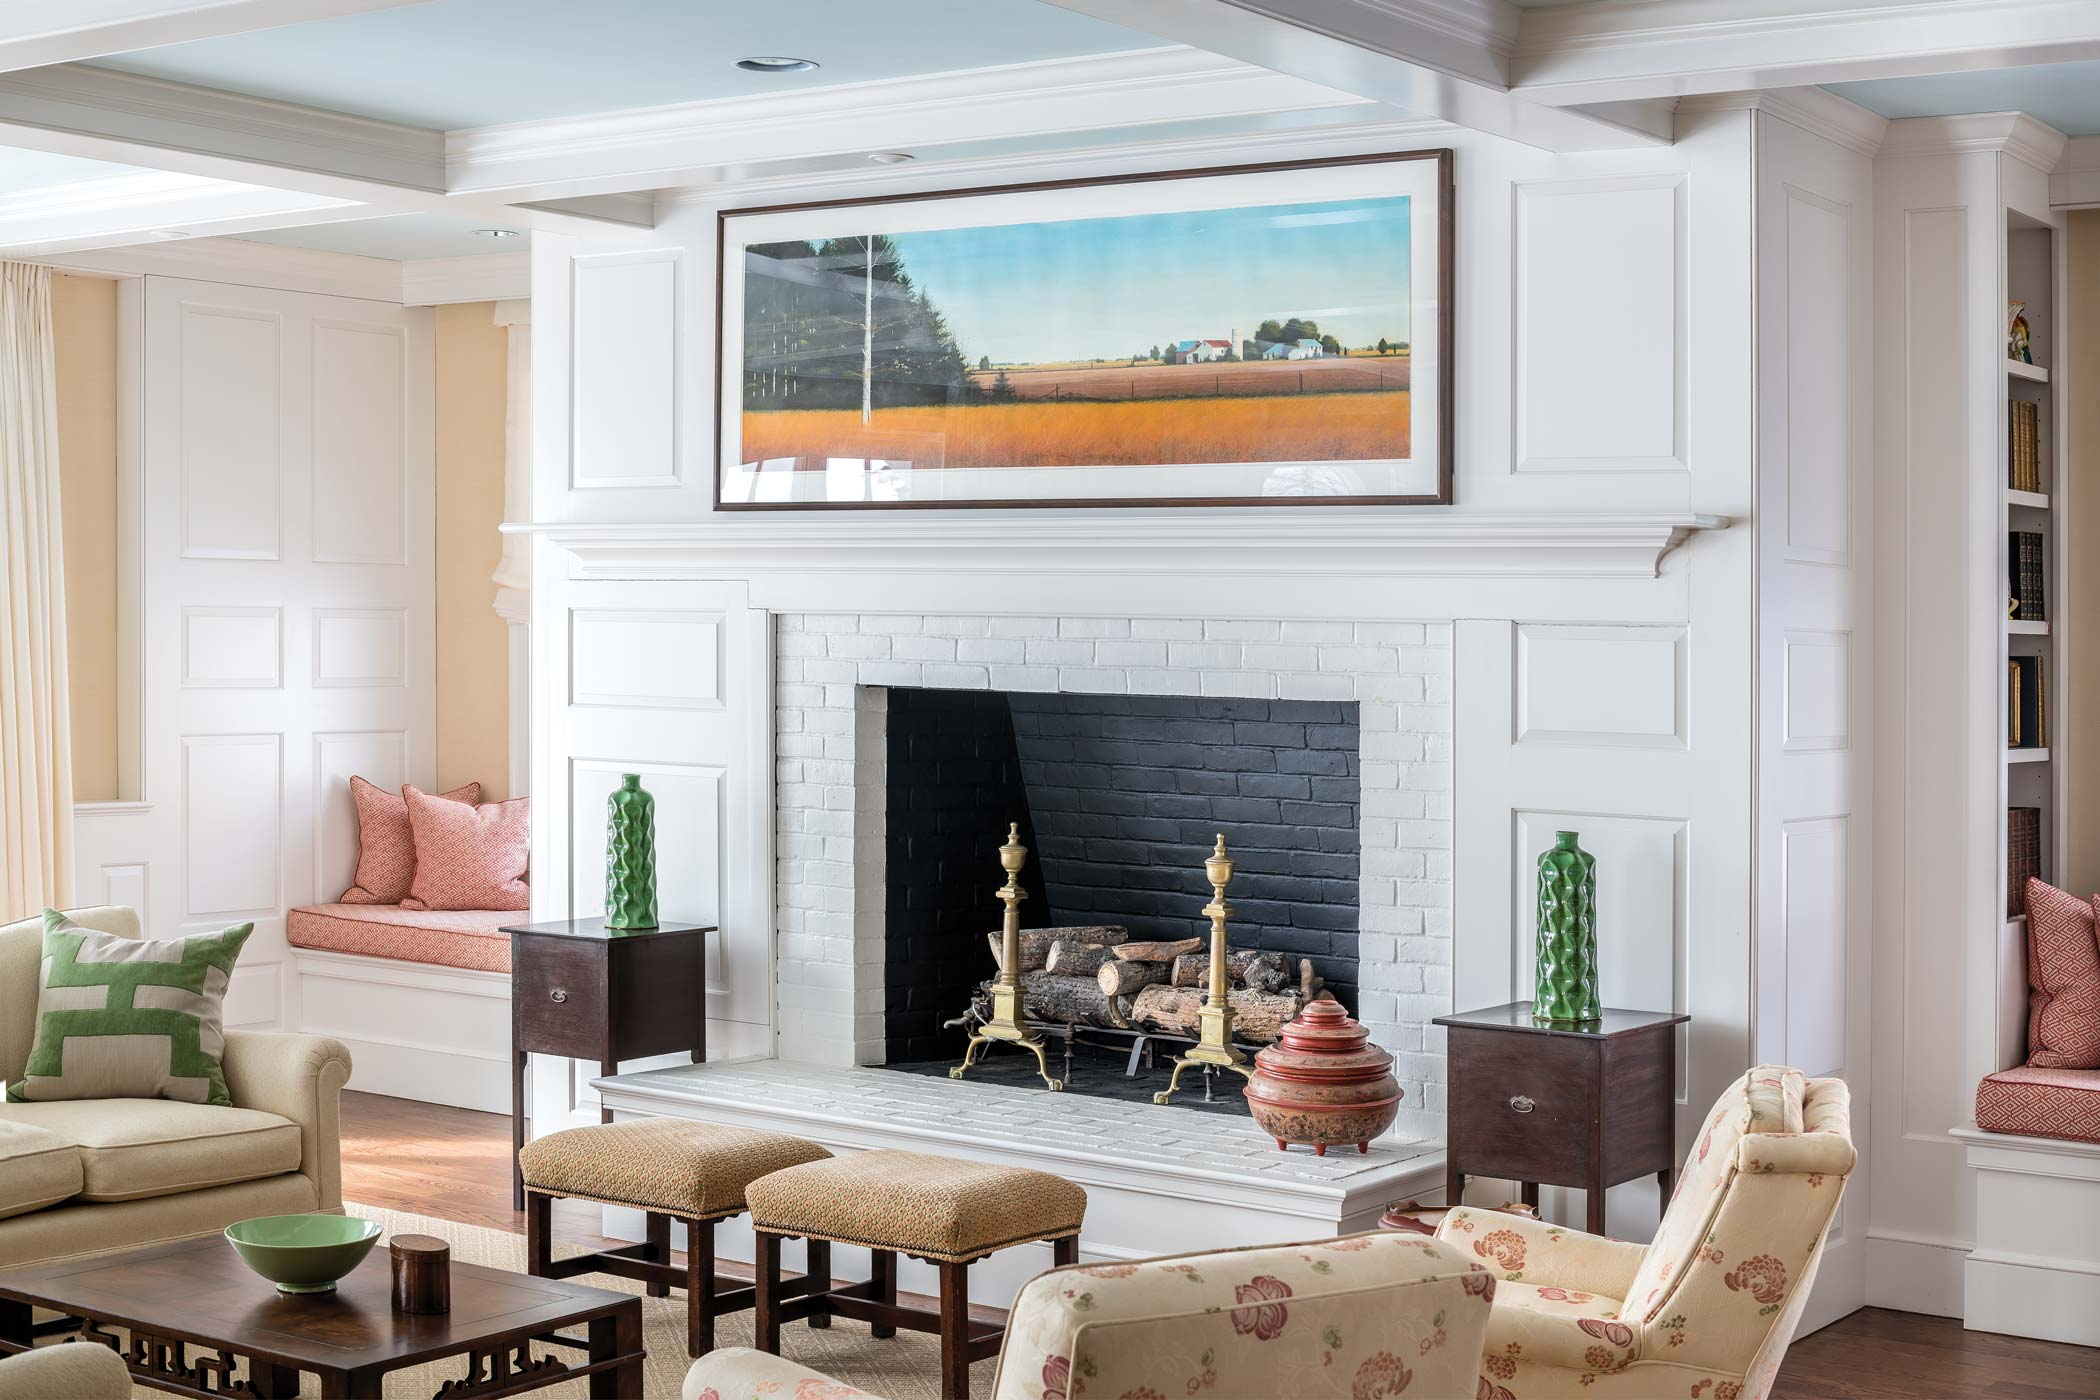 During the living room renovation, architect Gordon Wallace lowered the floor, a design decision that heightened the ceiling and opened up the space while working within the existing structure. The painting over the hearth is by William Dunlap.